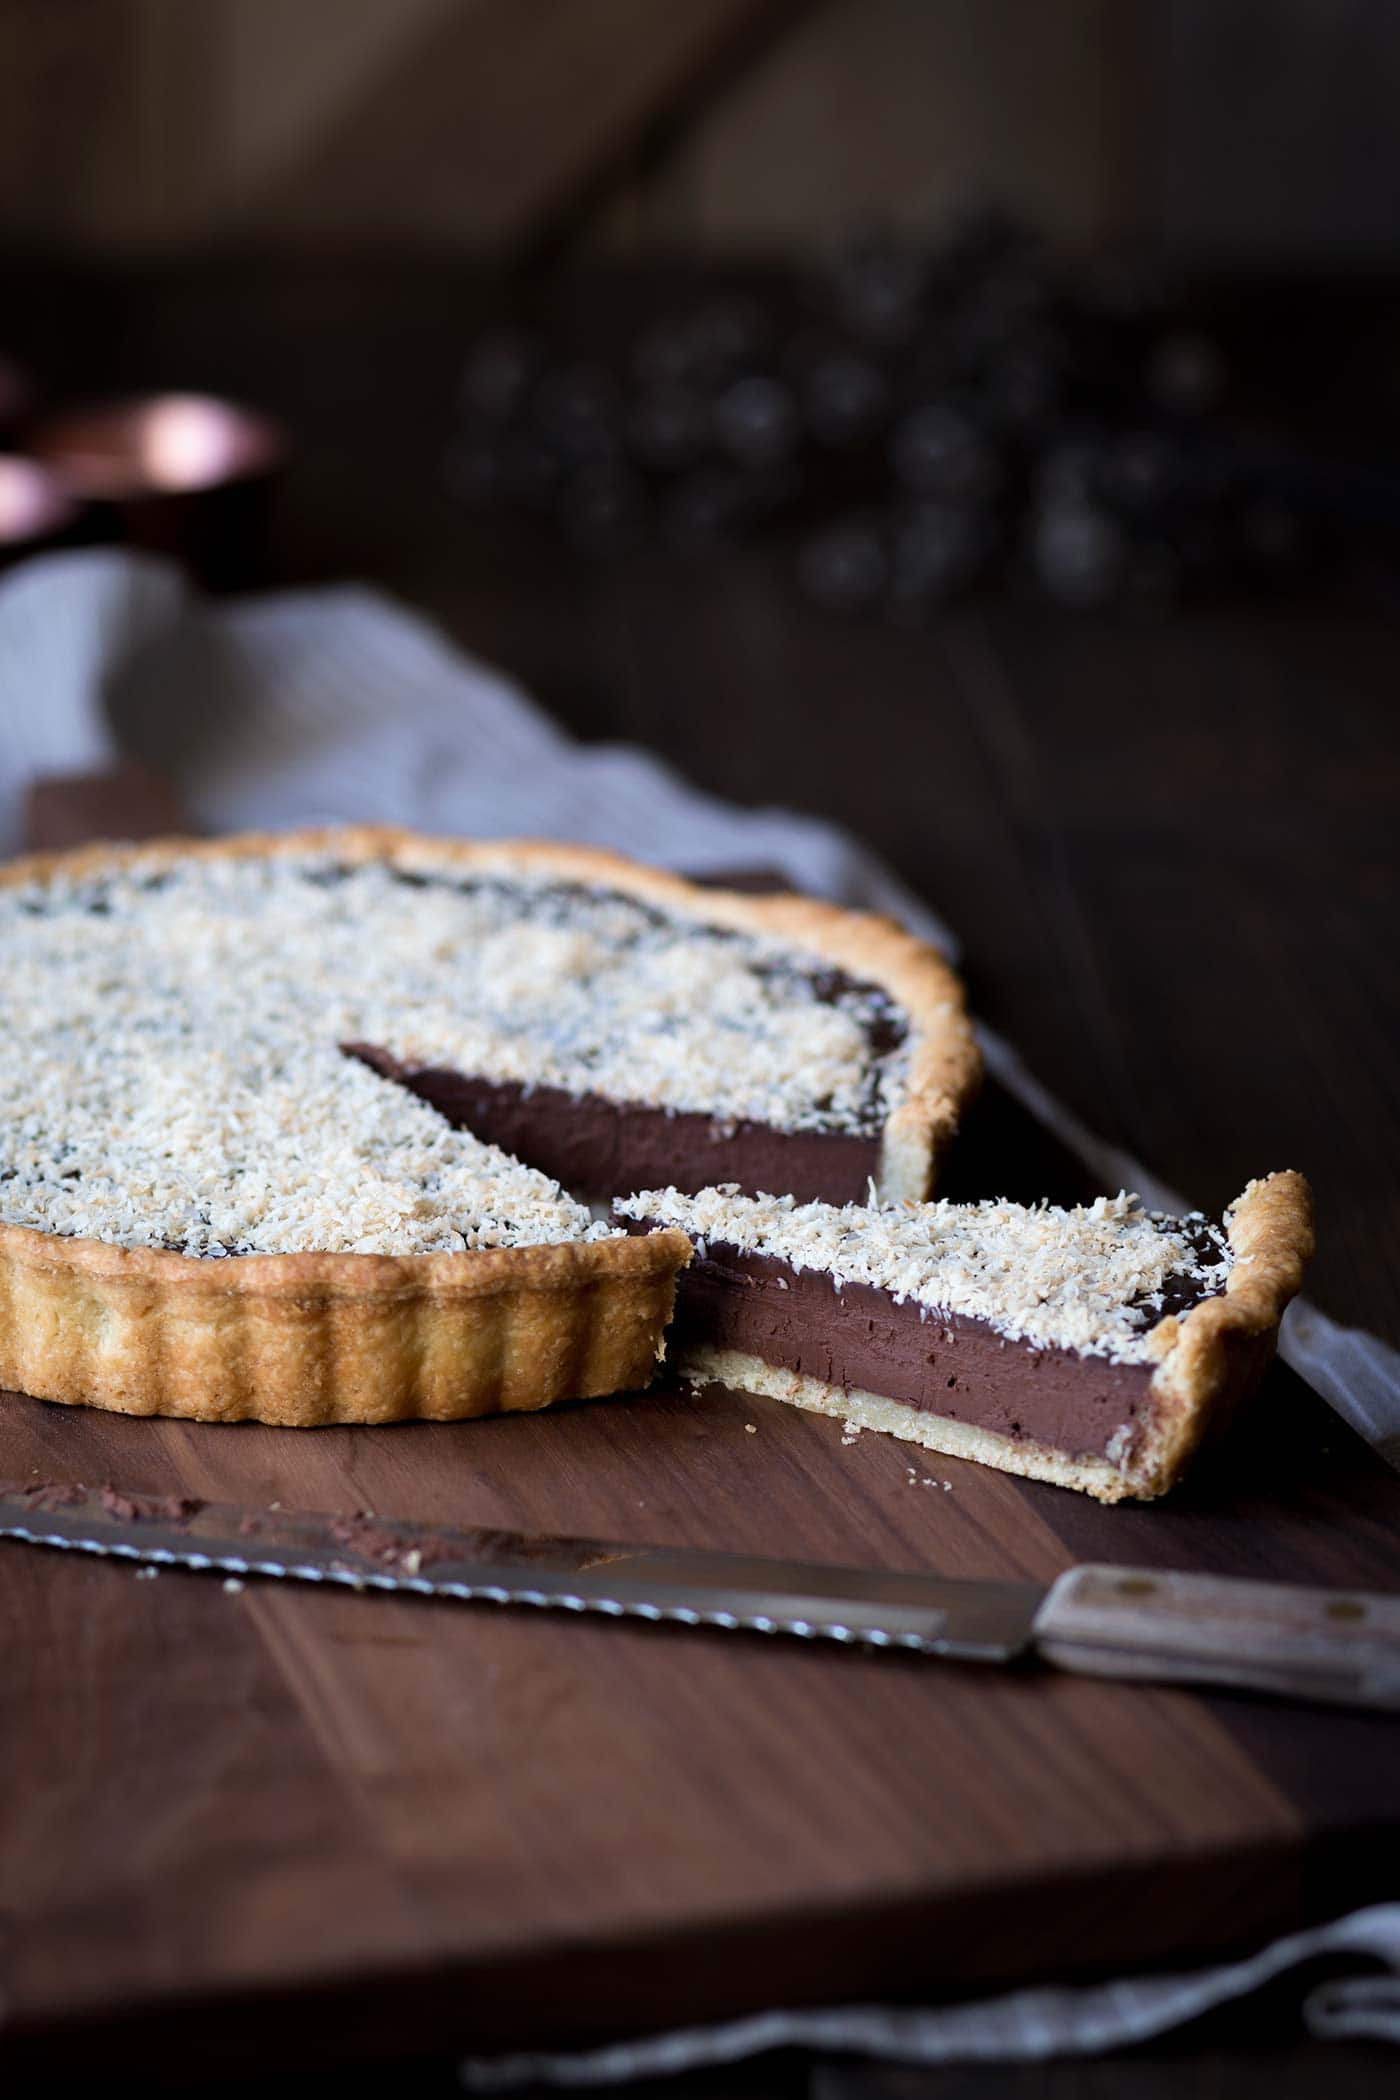 A photo of the finished chocolate tart recipe.